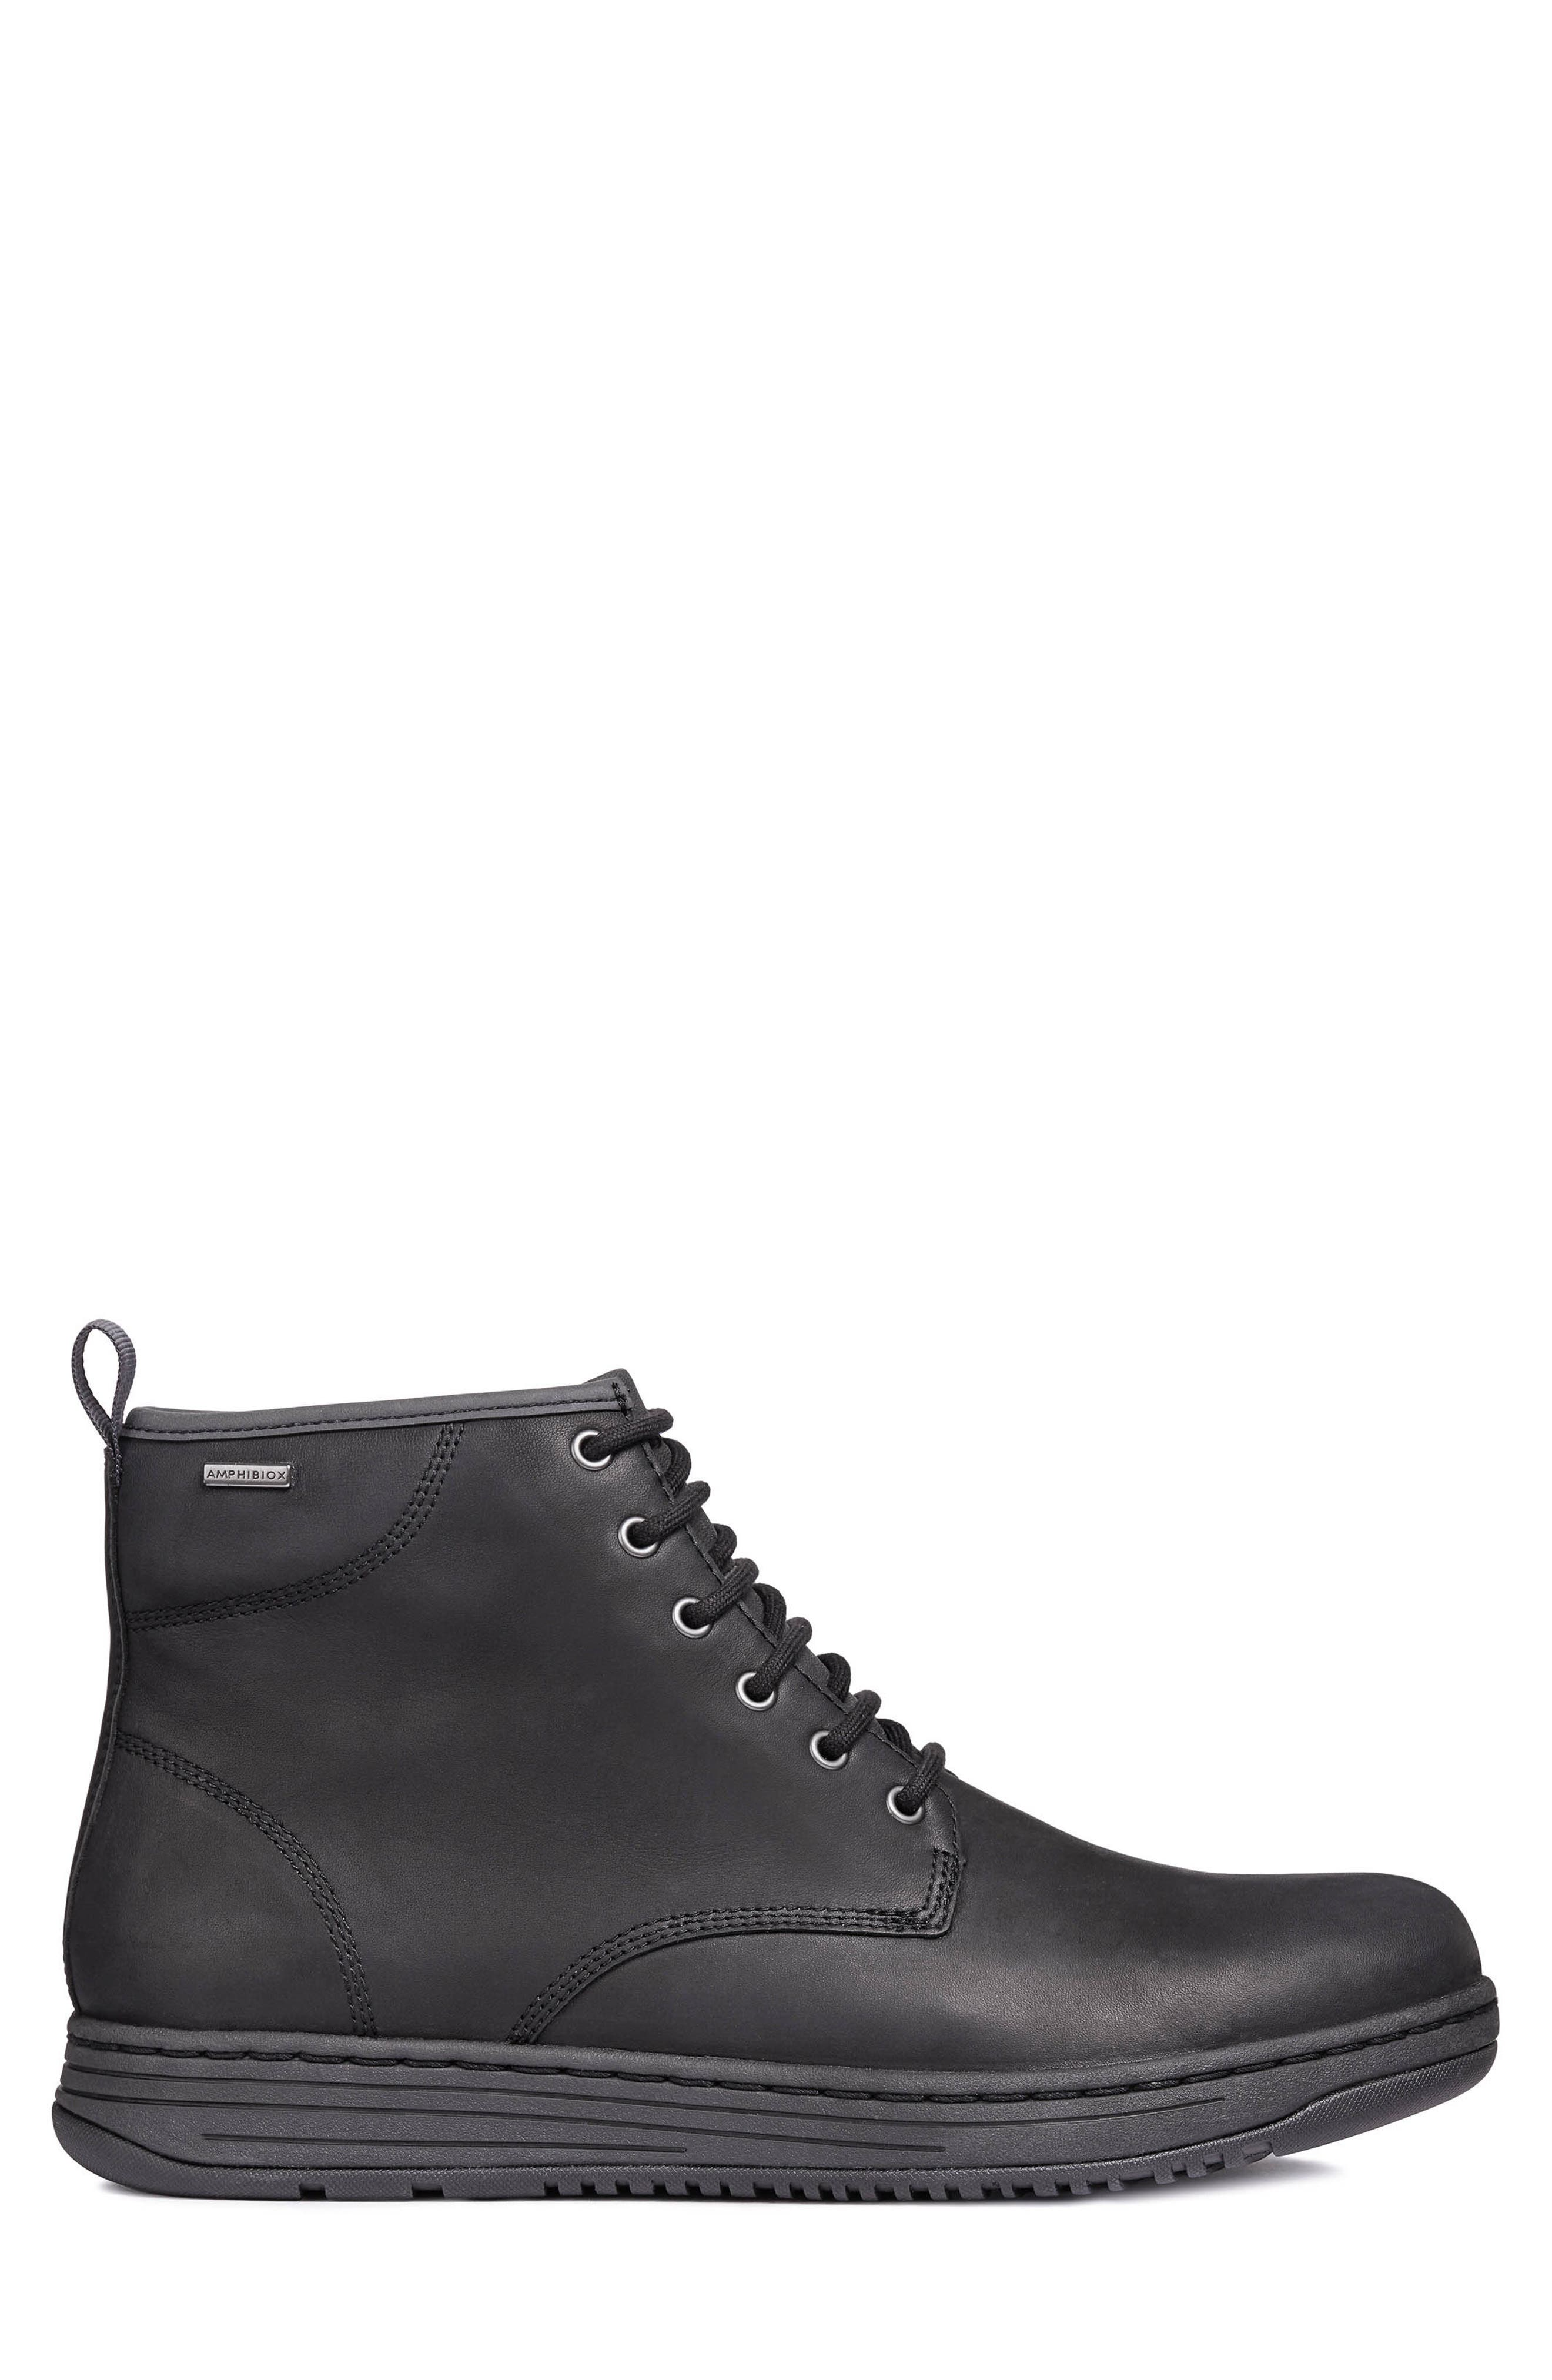 Abroad ABX 2 Tall Lace-Up Boot,                             Alternate thumbnail 3, color,                             BLACK